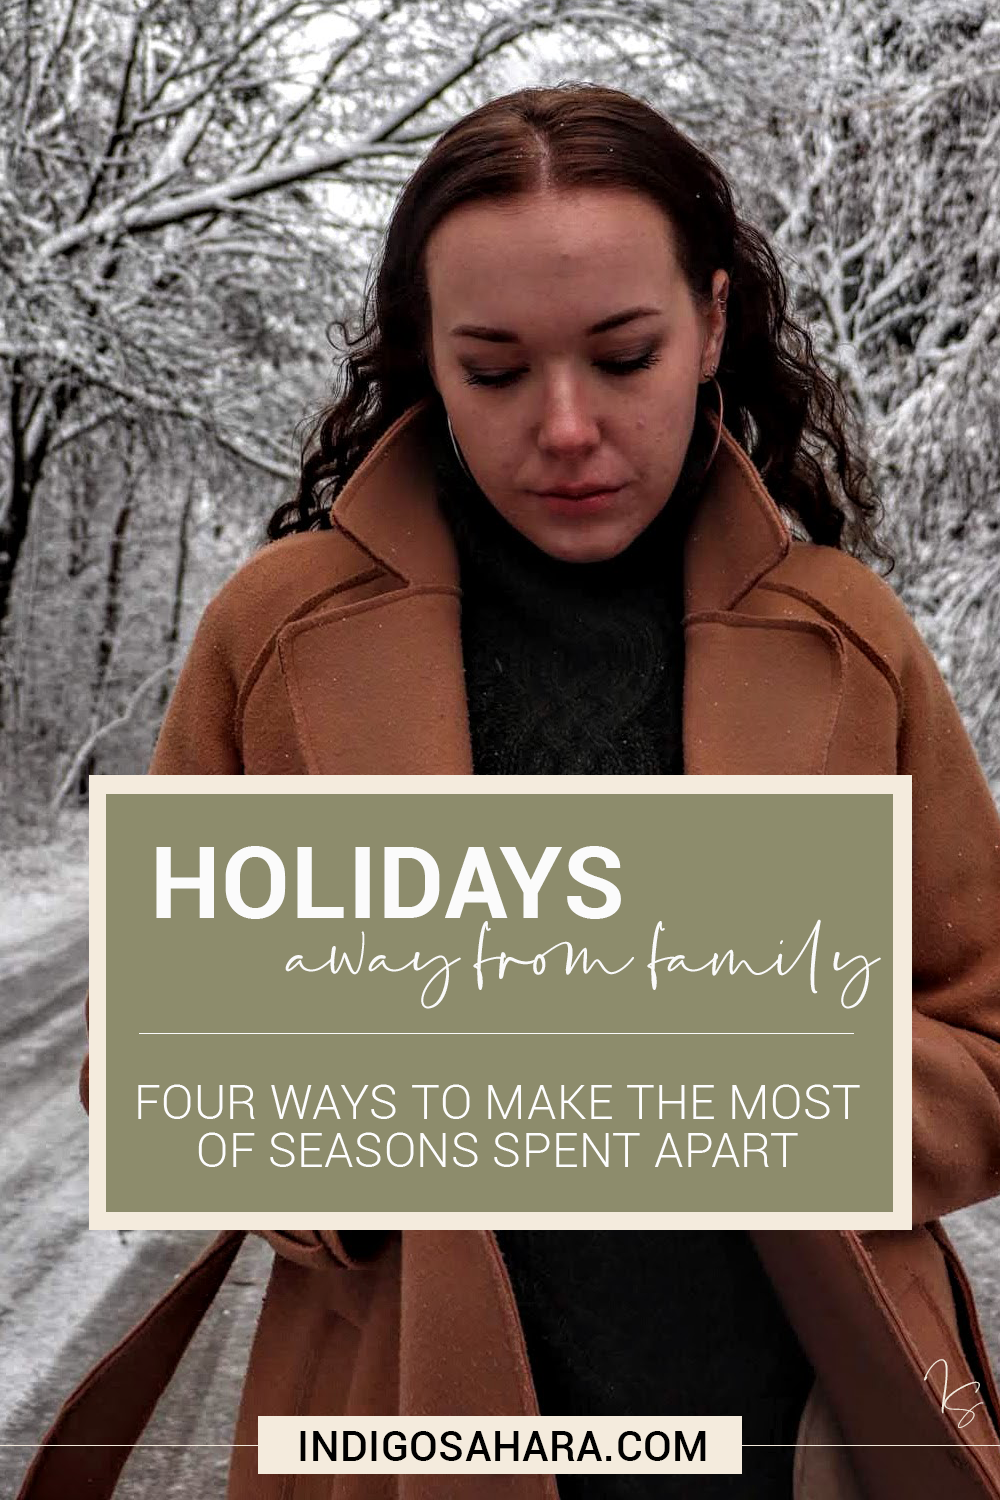 Holidays Spend Away from Family Members | Blog Post | Indigo Sahara